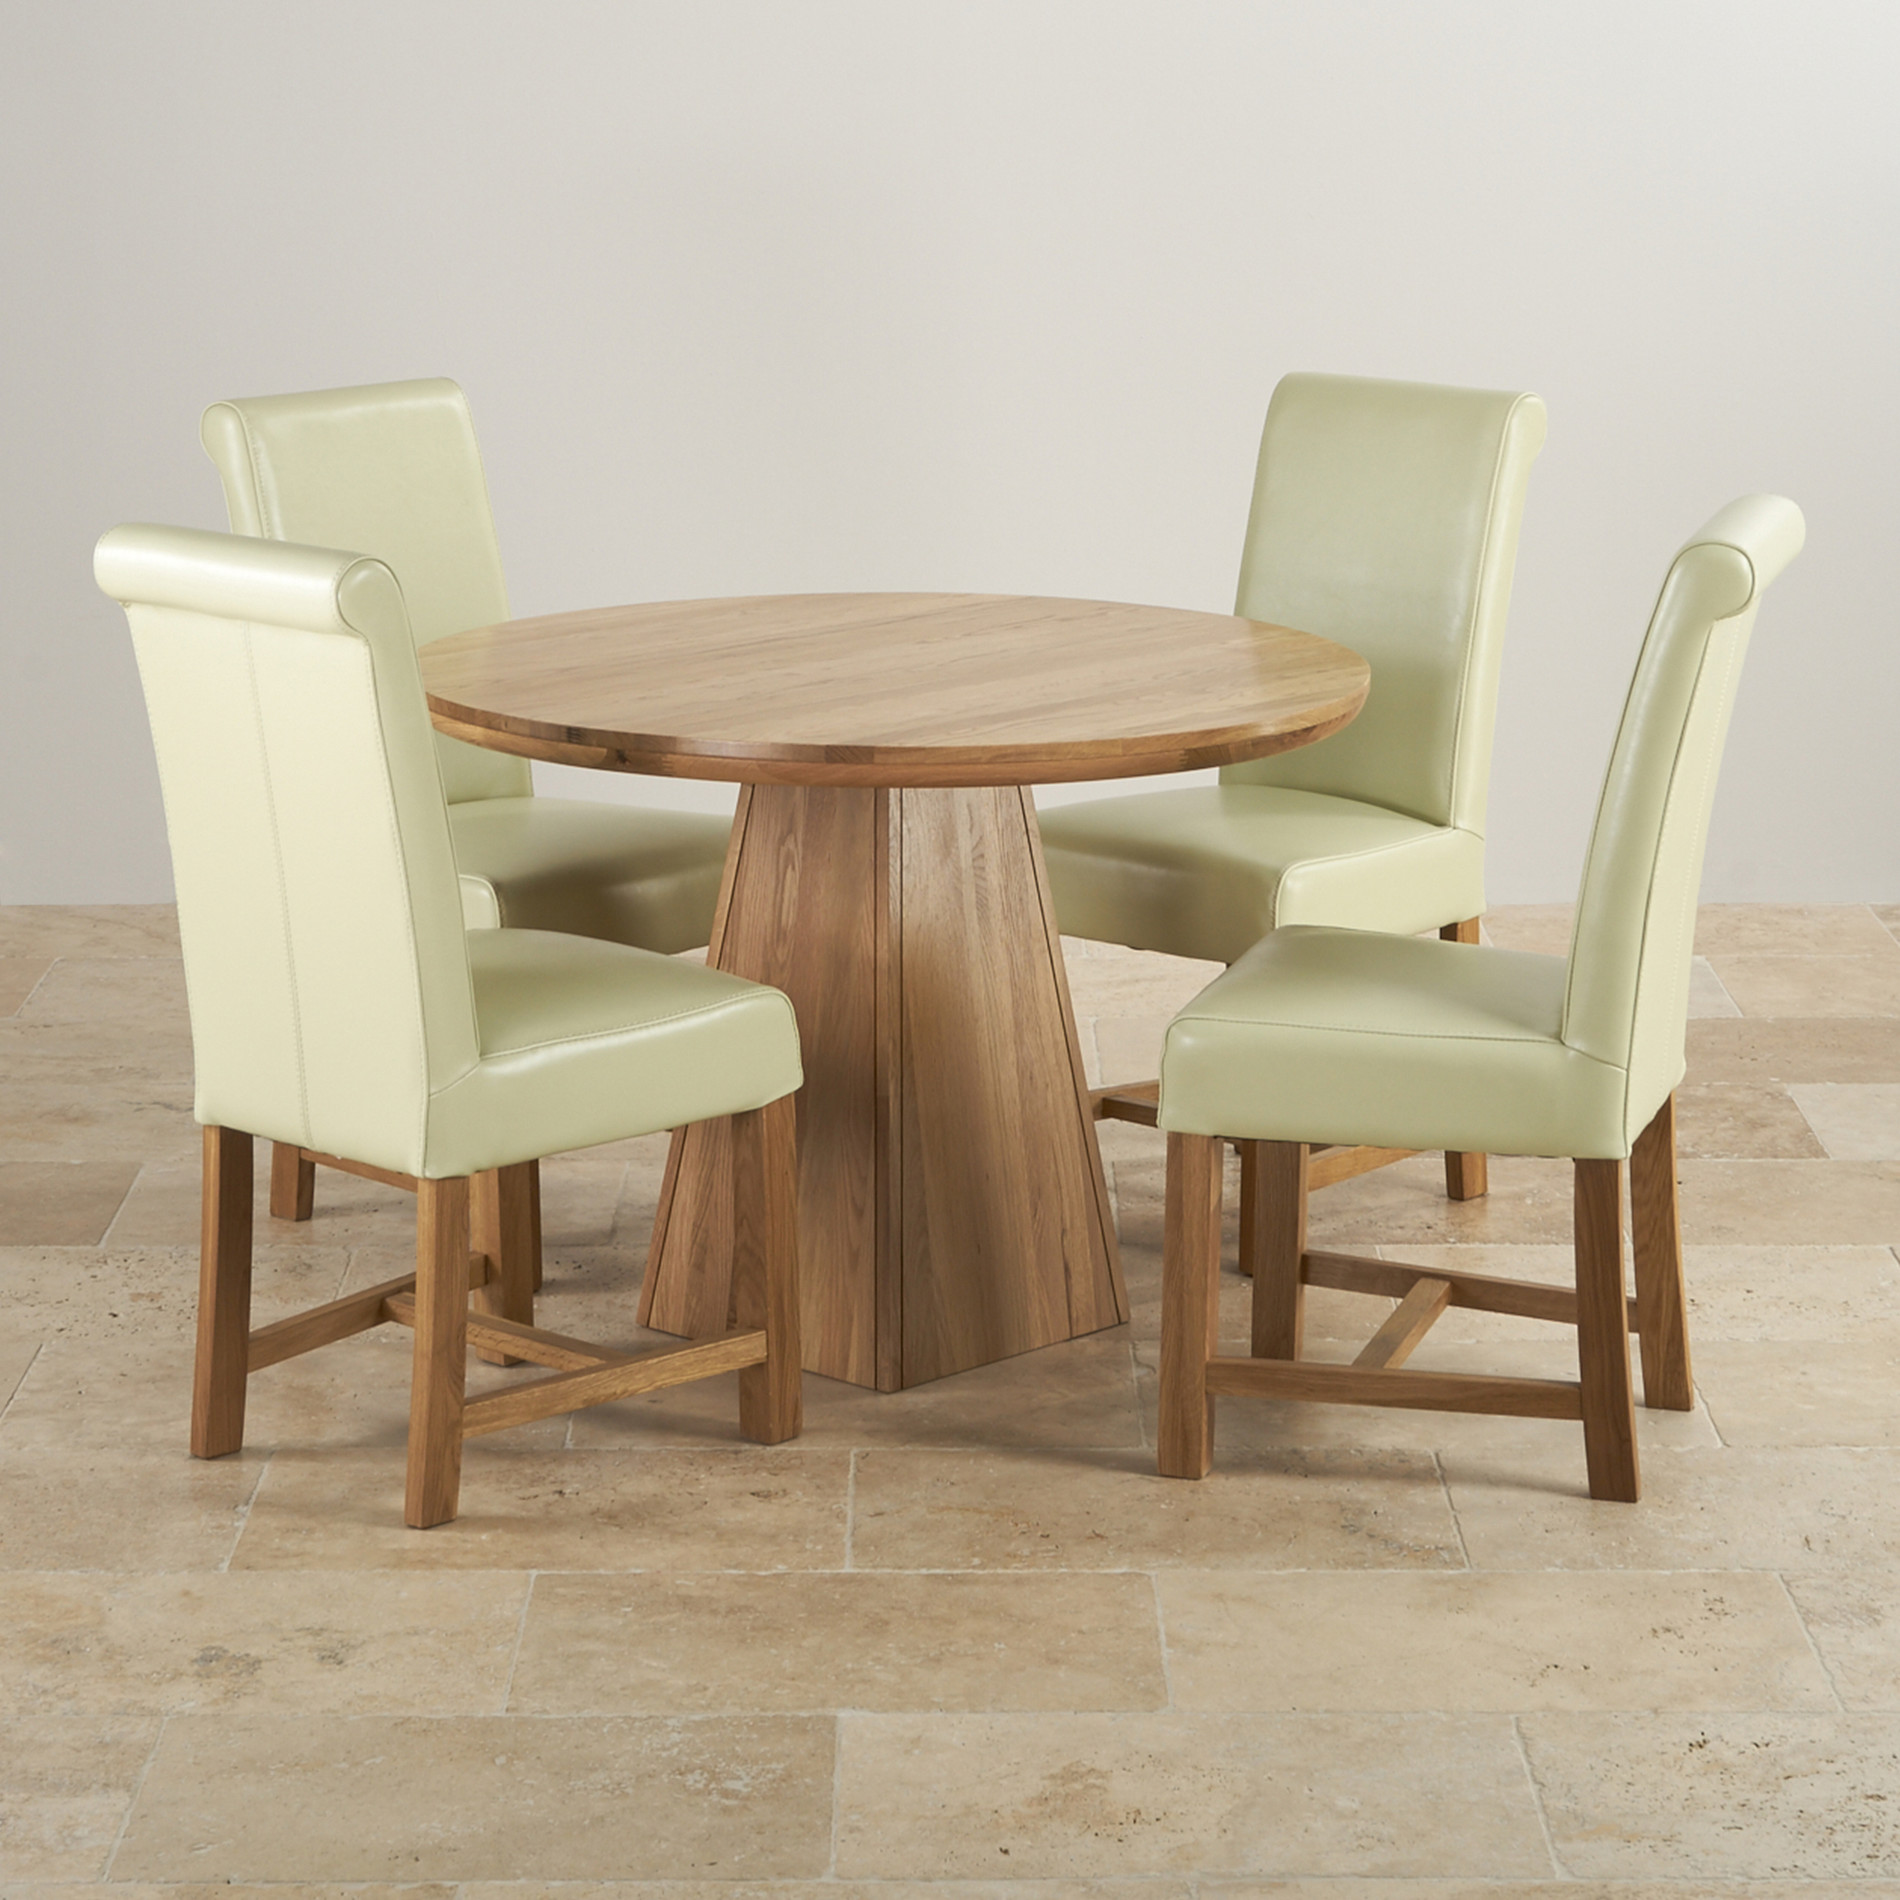 Cream Dining Set: Provence Dining Set In Real Oak: Table + 4 Leather Cream